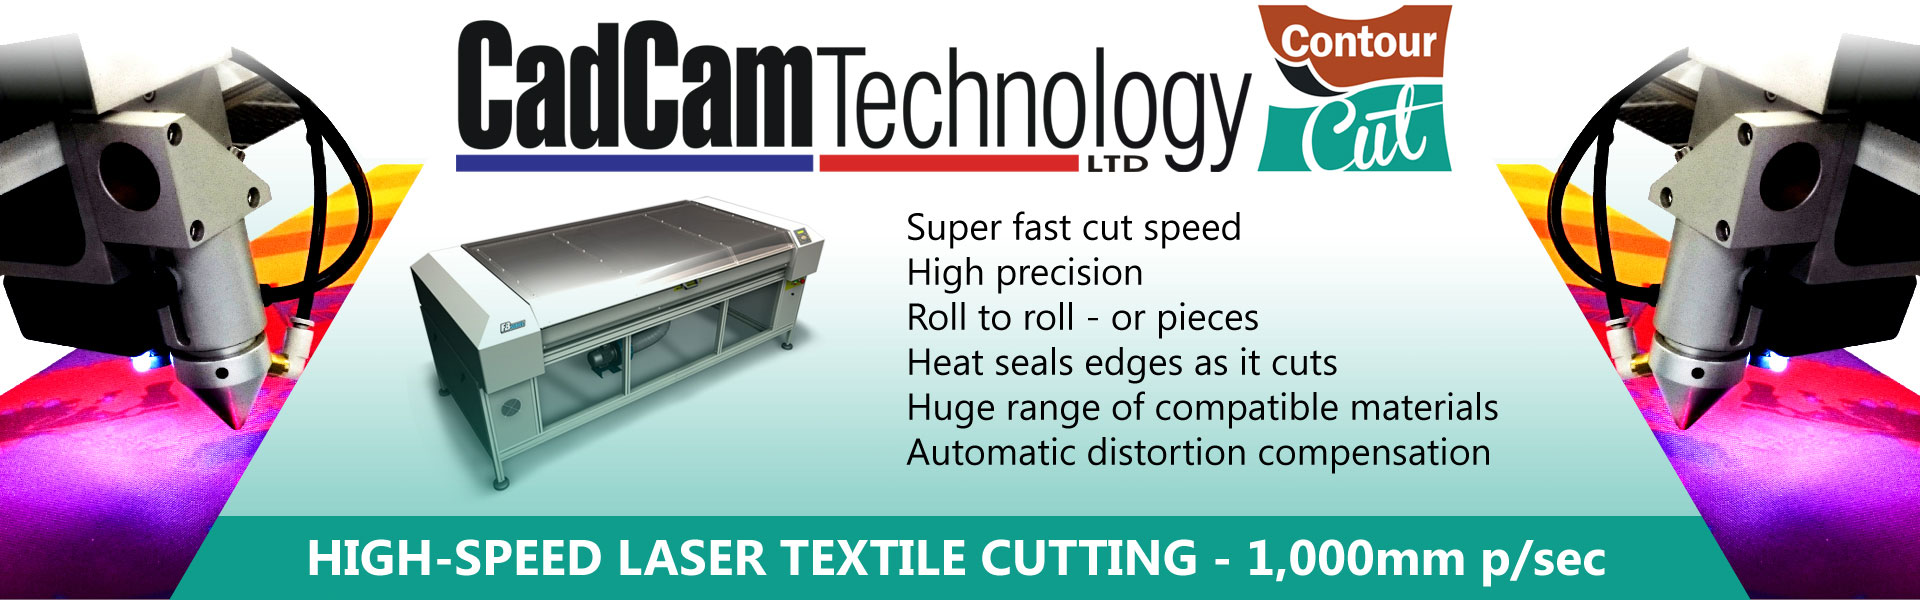 cadcam-technology-condour-cut